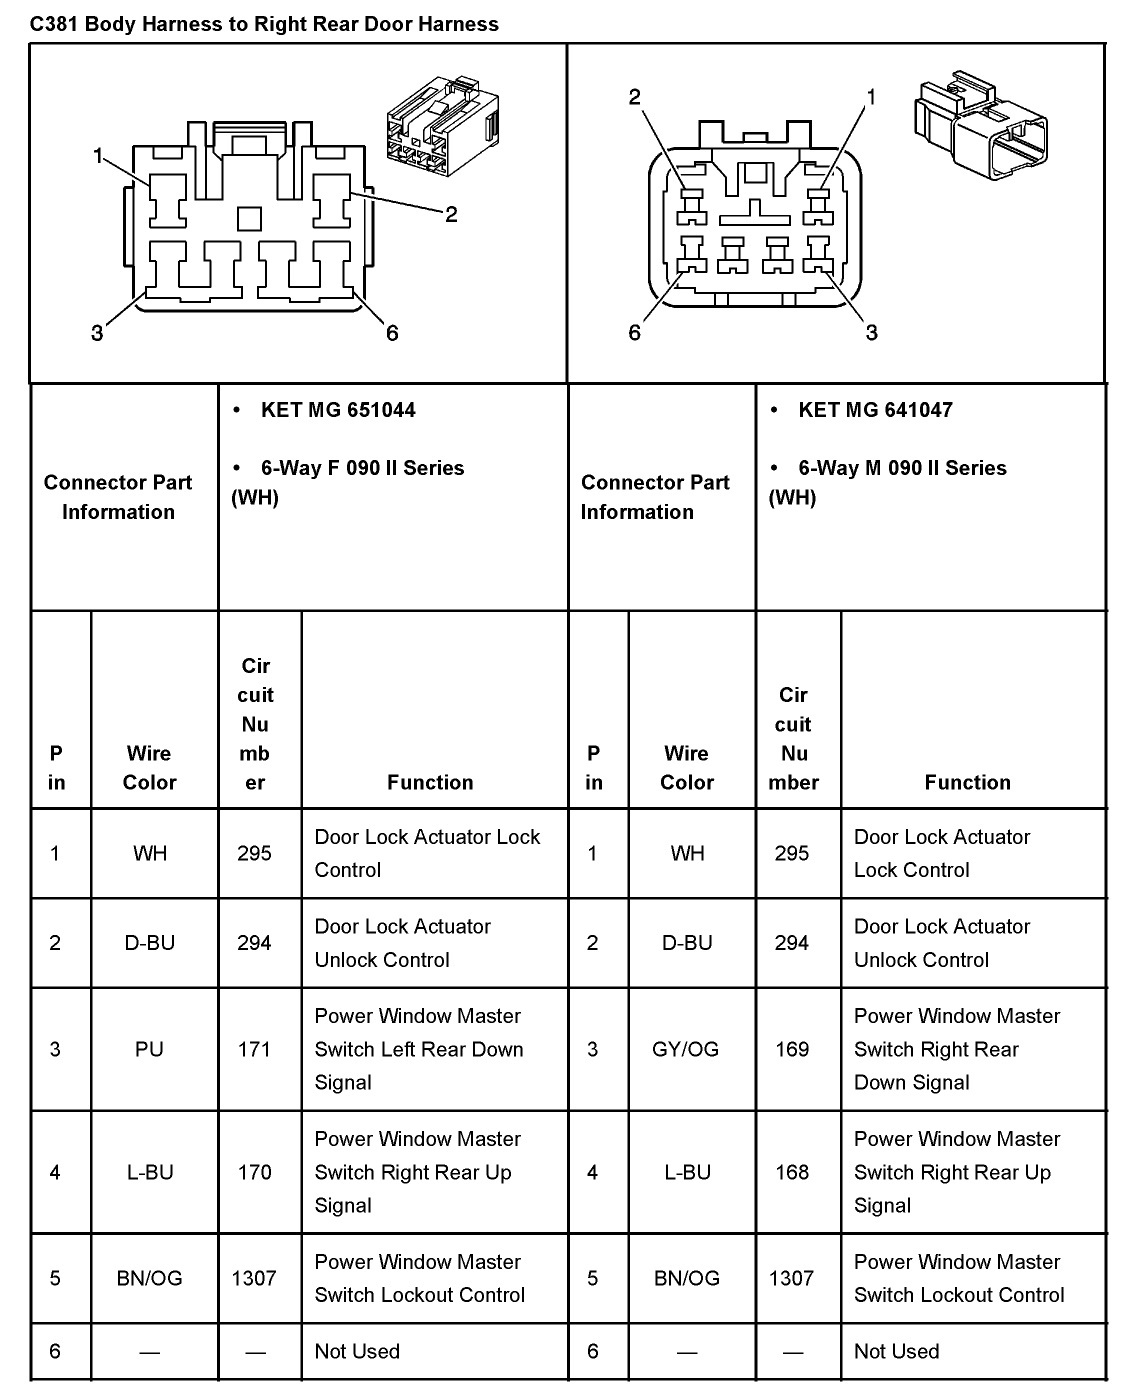 7359d1383706233 2005 aveo master connector list diagrams ma13 jpg 2005 aveo master connector list and diagrams 2004 Chevy Aveo Parts Diagram at bayanpartner.co